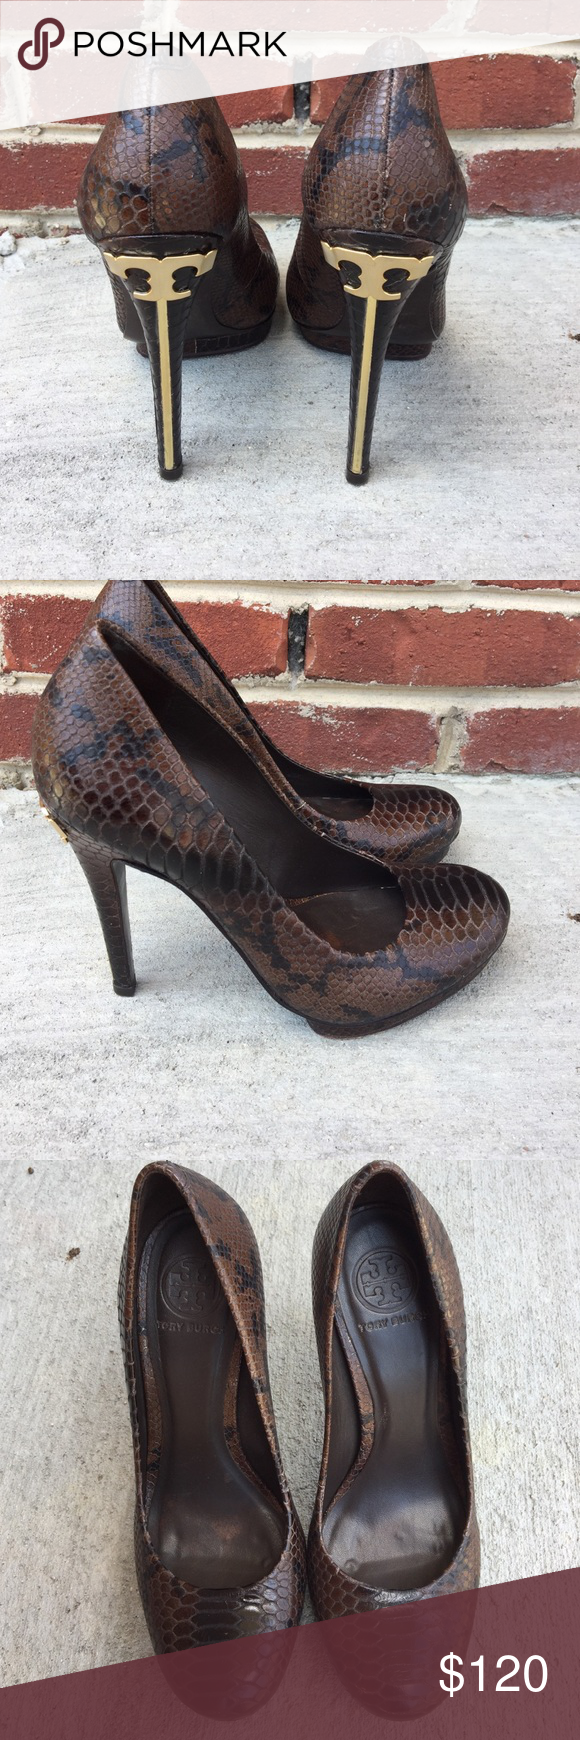 41070c87d0579 Perfect Tory Burch Jude-Amazon Snake Print Heel. These shoes are amazing  with so much life left. High heel and small platform.